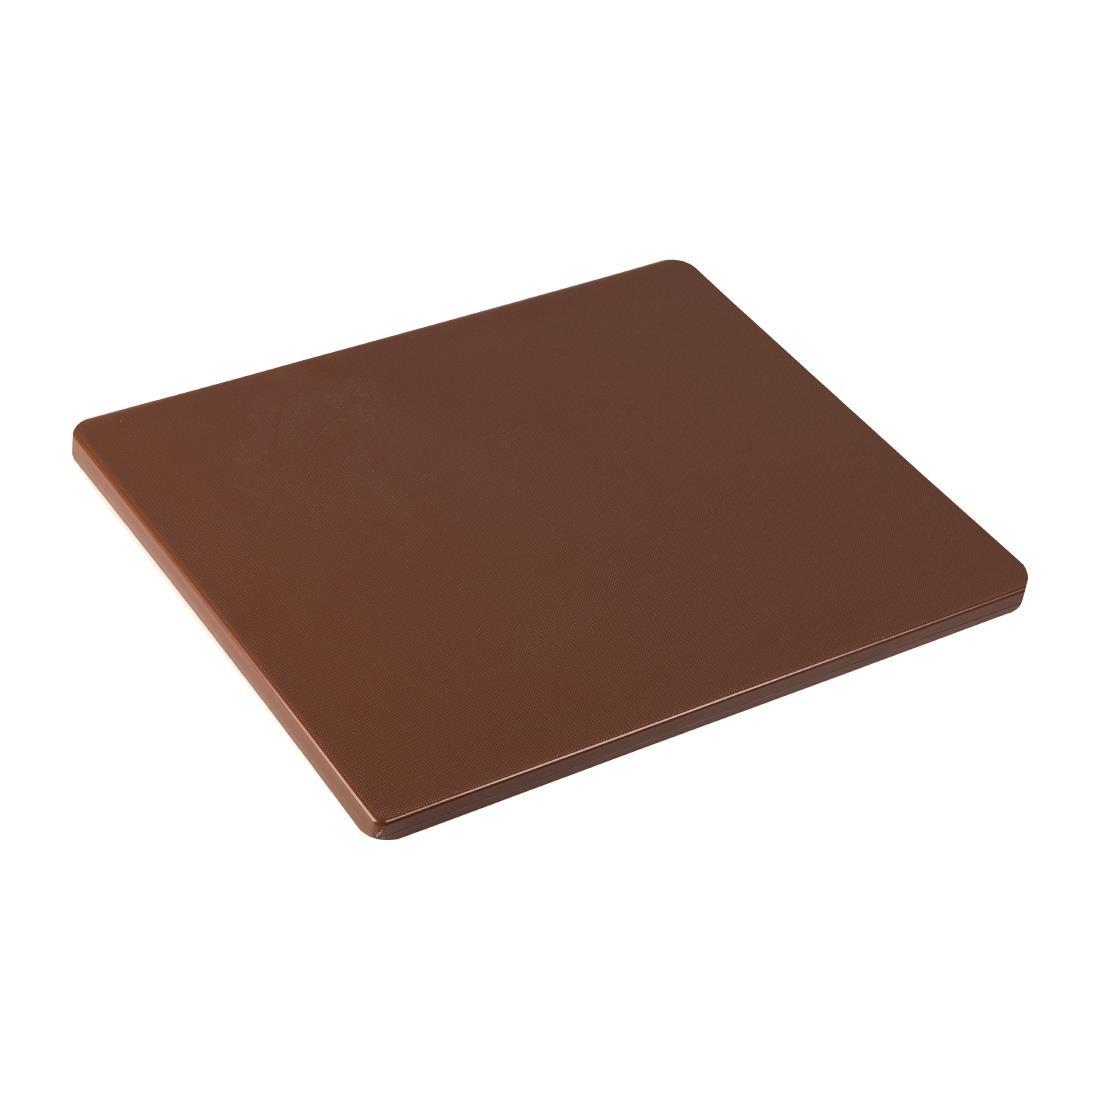 GL292 - Hygiplas Gastronorm 1/2 Brown Chopping Board- Each - GL292